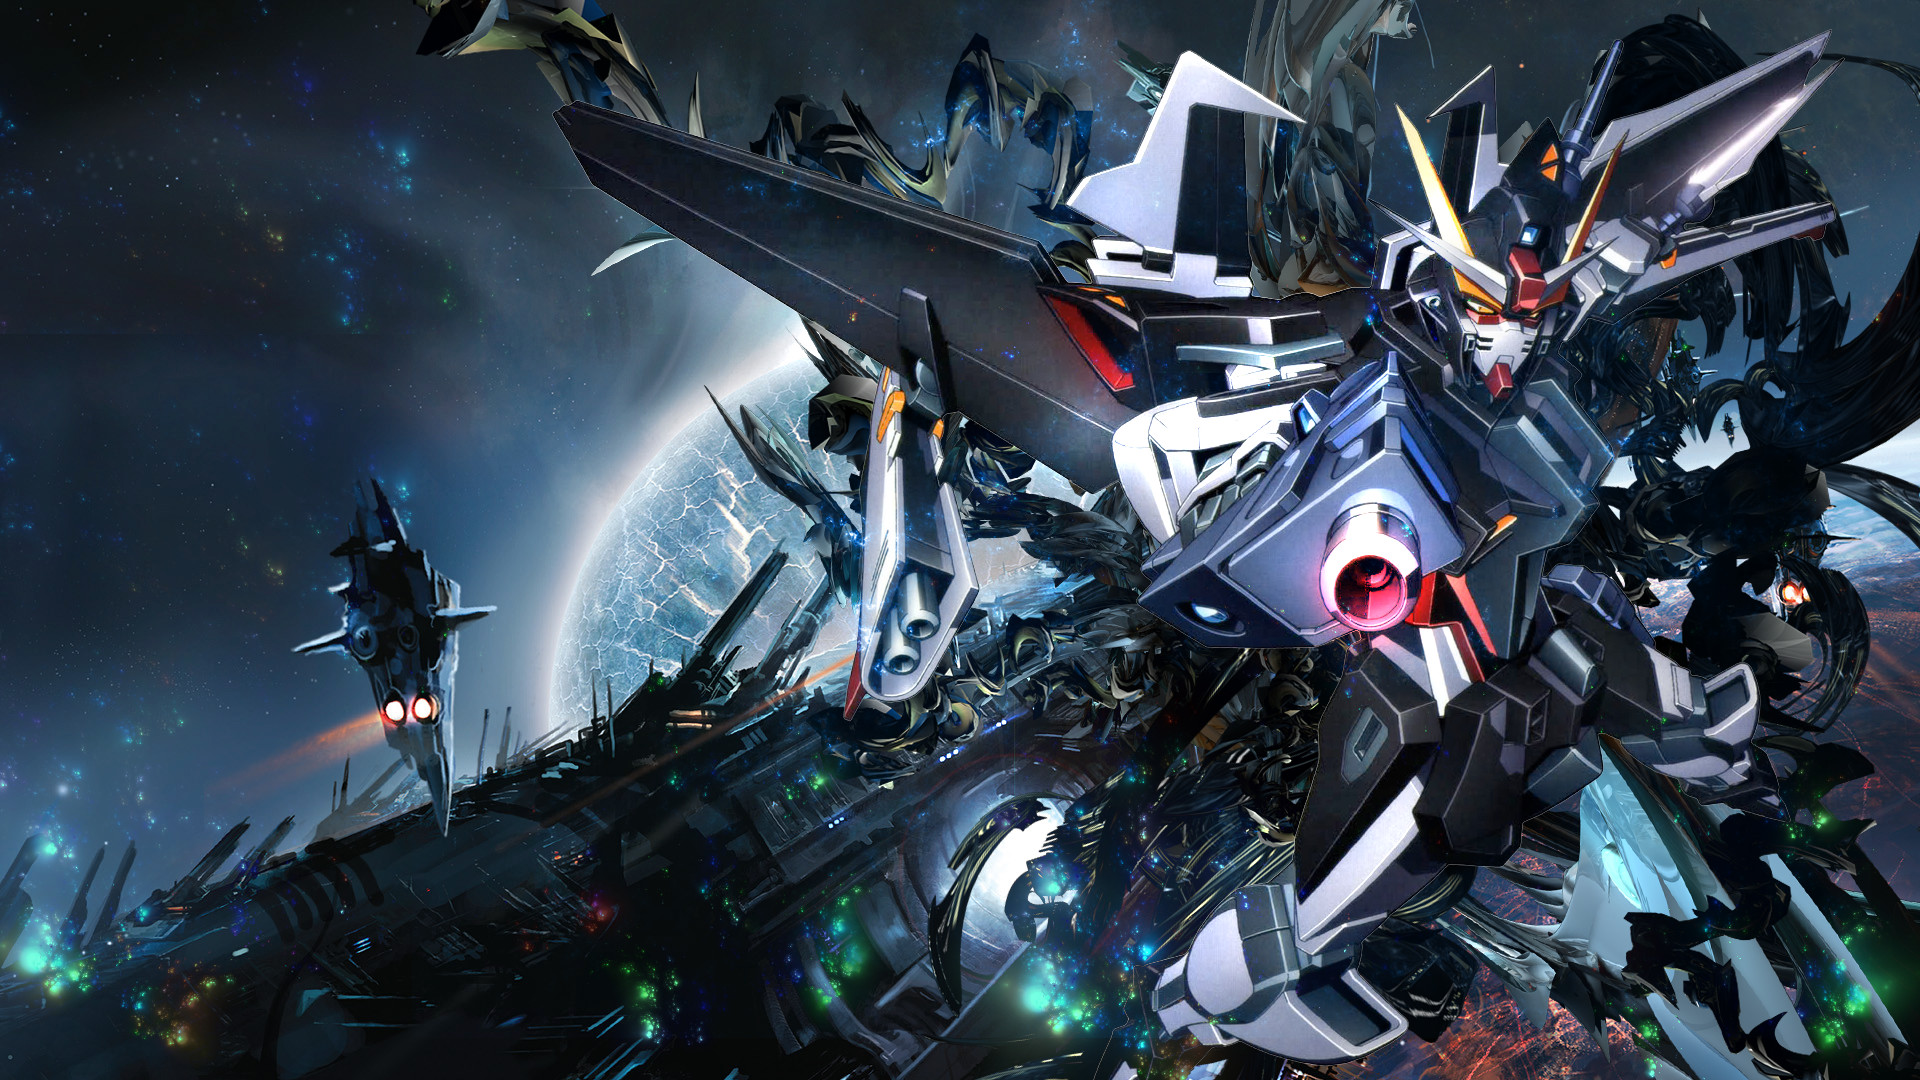 67 Gundam Hd Wallpapers on WallpaperPlay 1920x1080